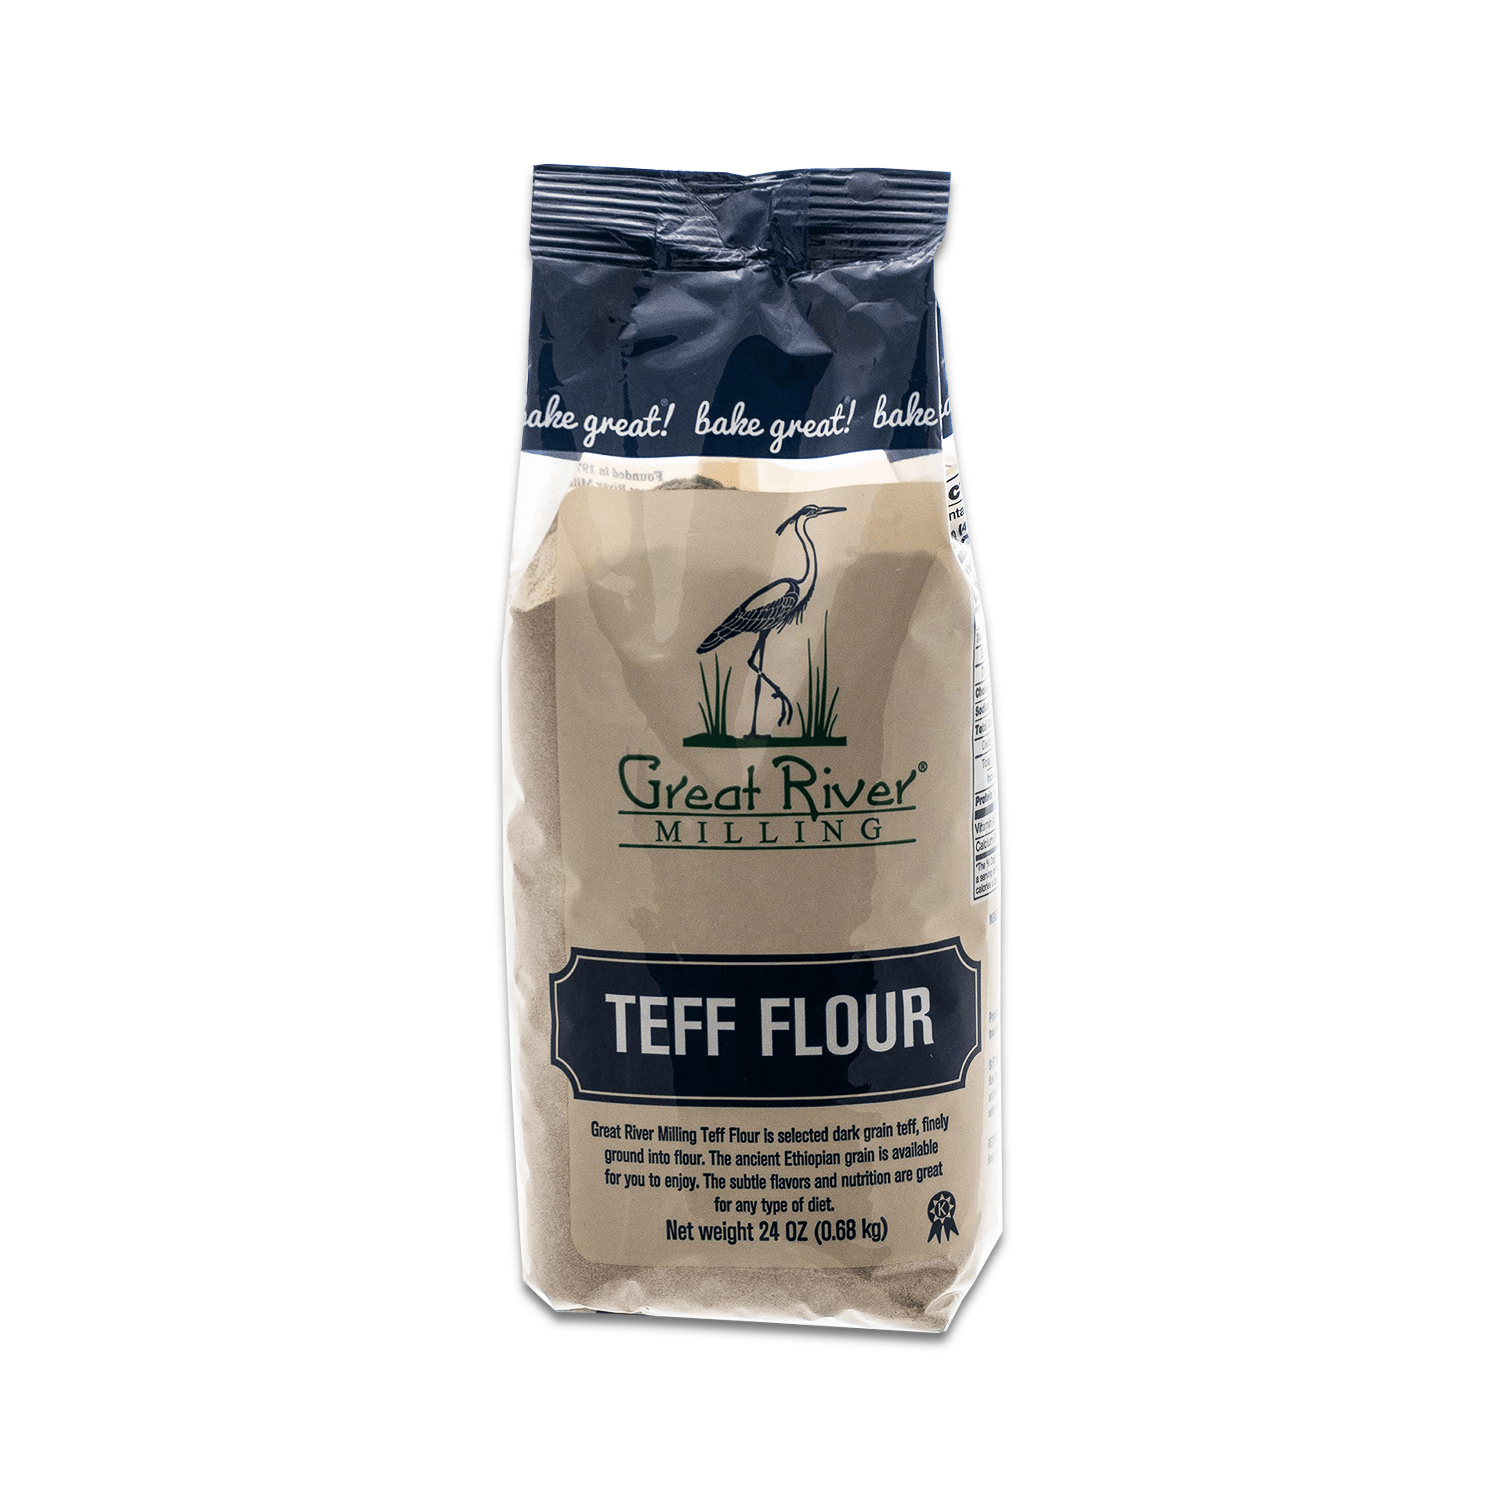 Great River Milling Teff Flour